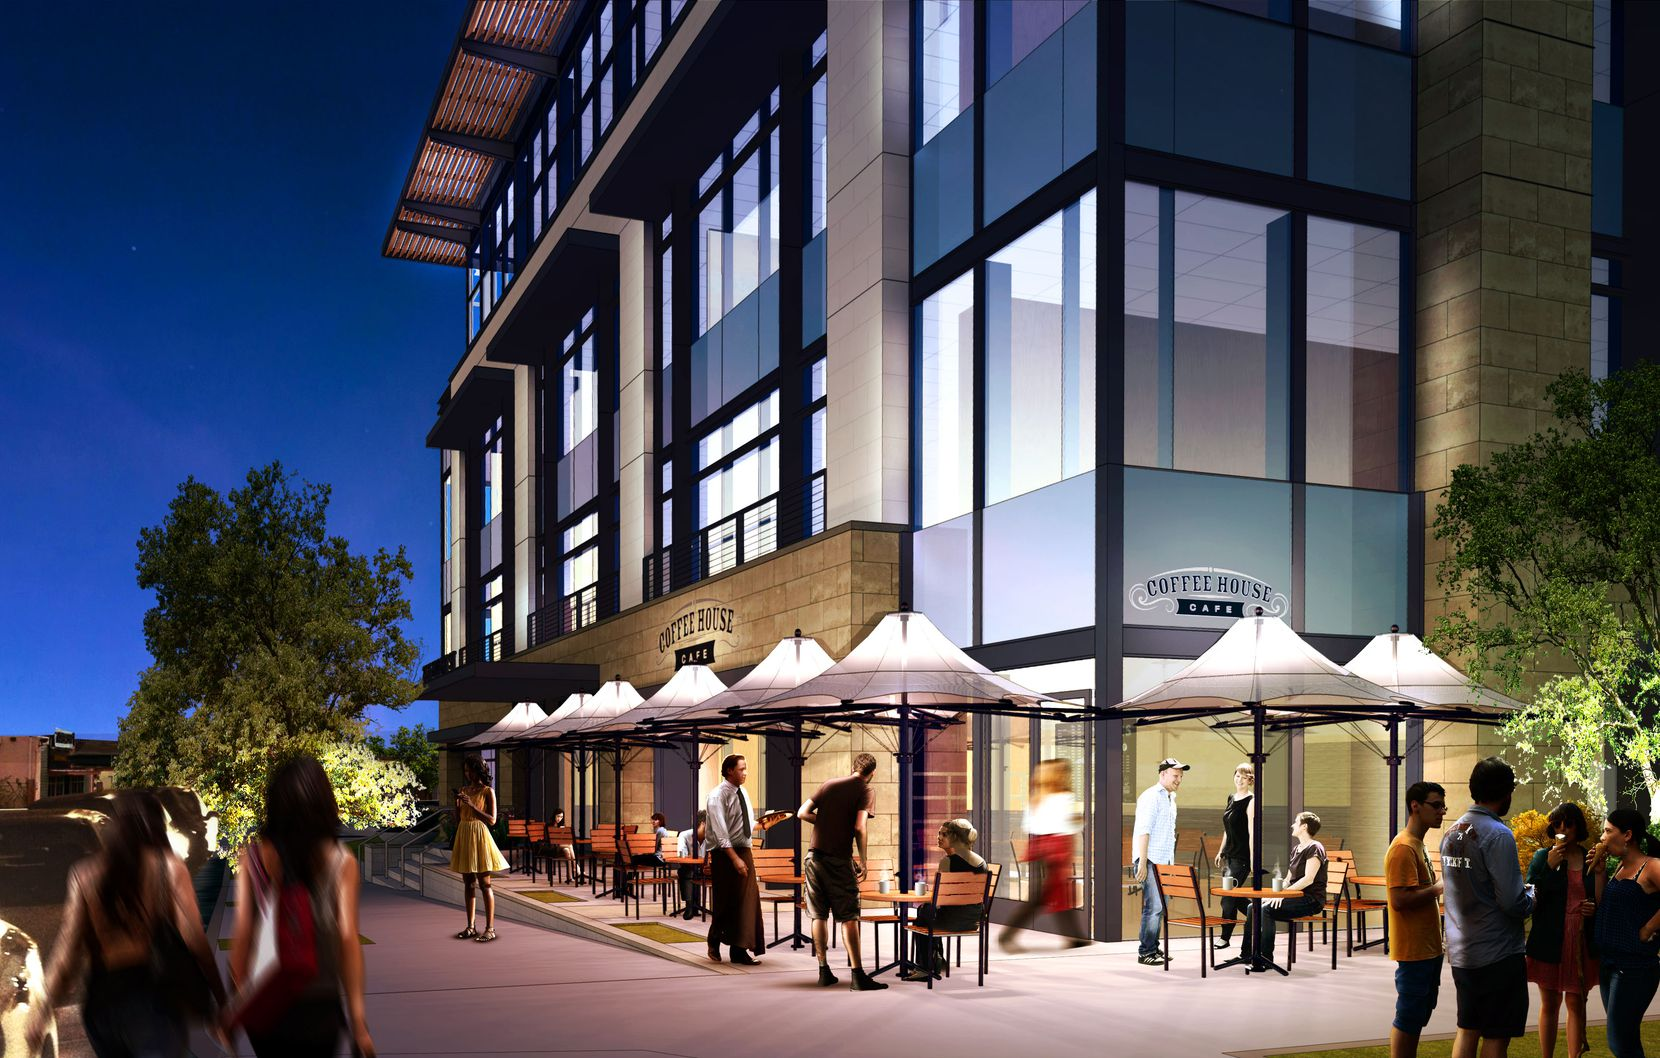 The planned office development will have a coffee shop on the ground floor.